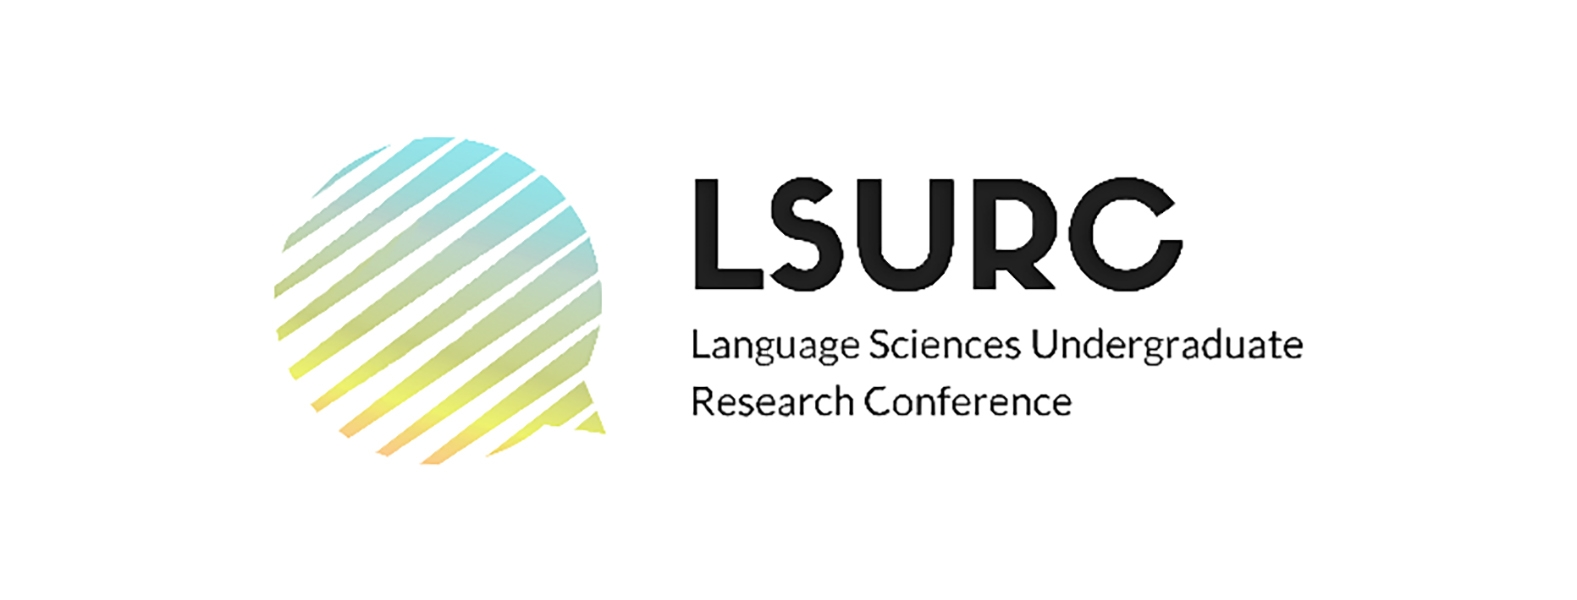 An image of the LSURC logo, a multicoloured speech bubble